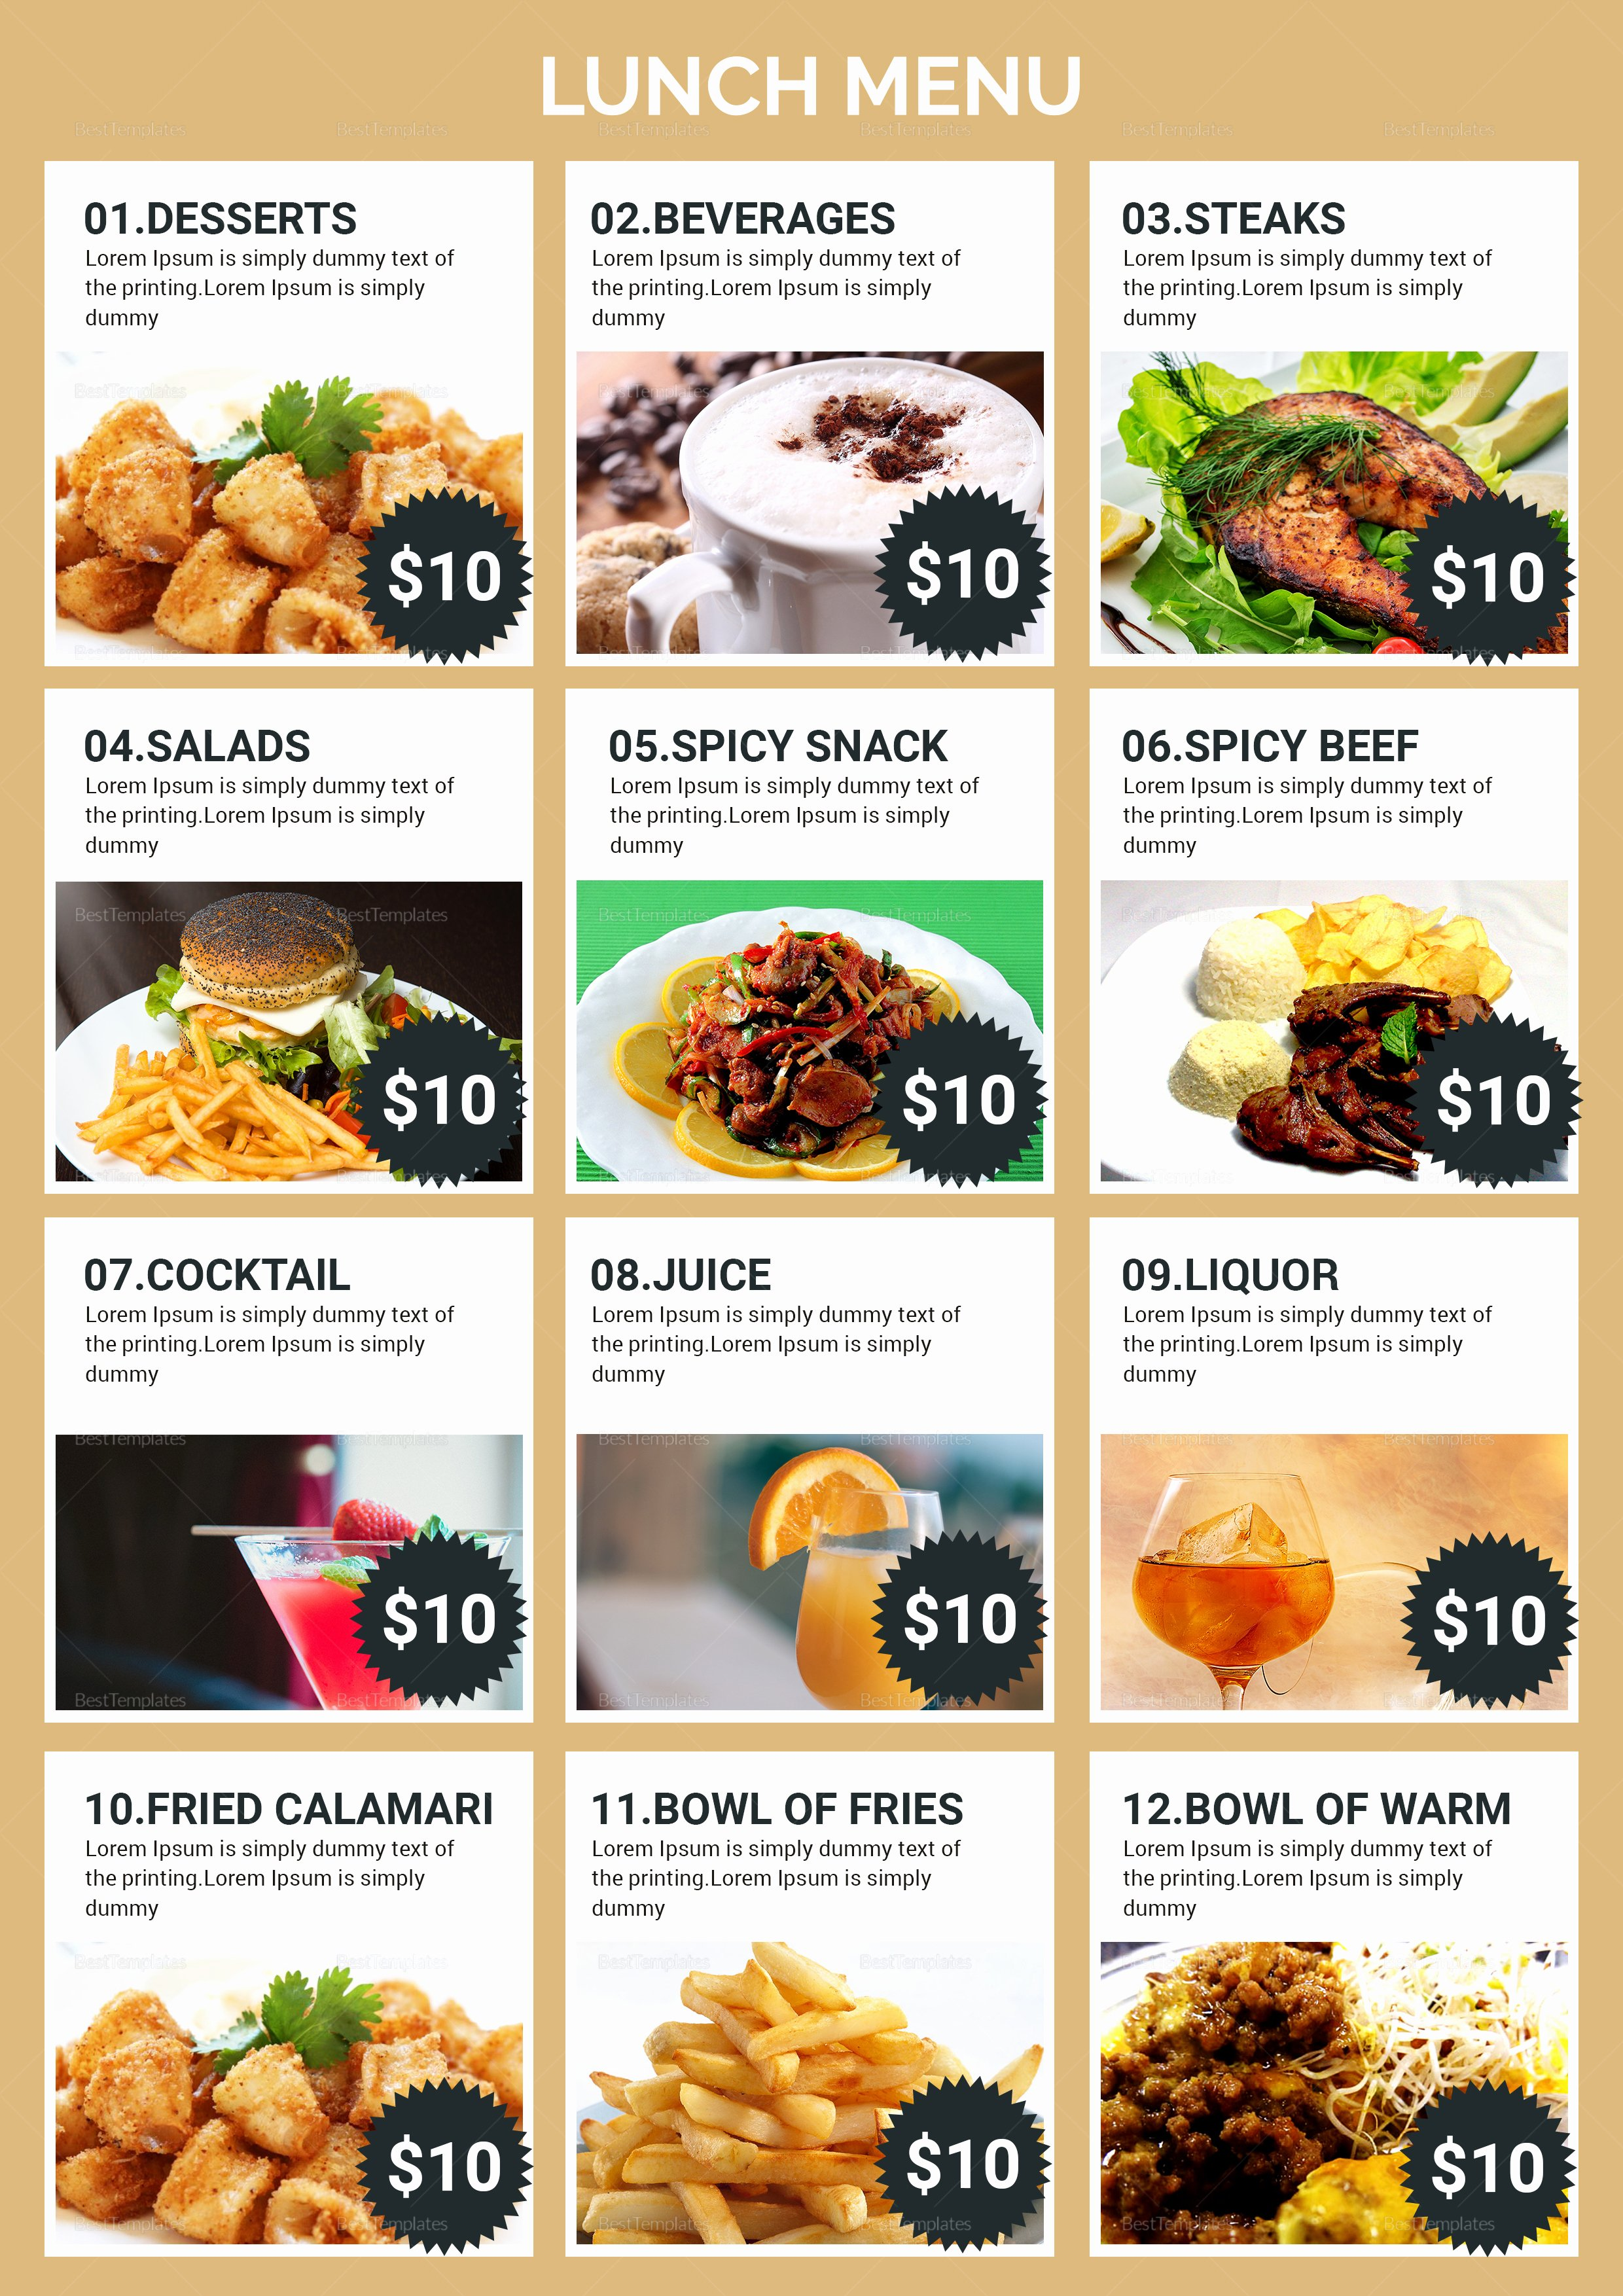 Lunch Menu Template Free Fresh Lunch Menu Design Template In Psd Word Publisher